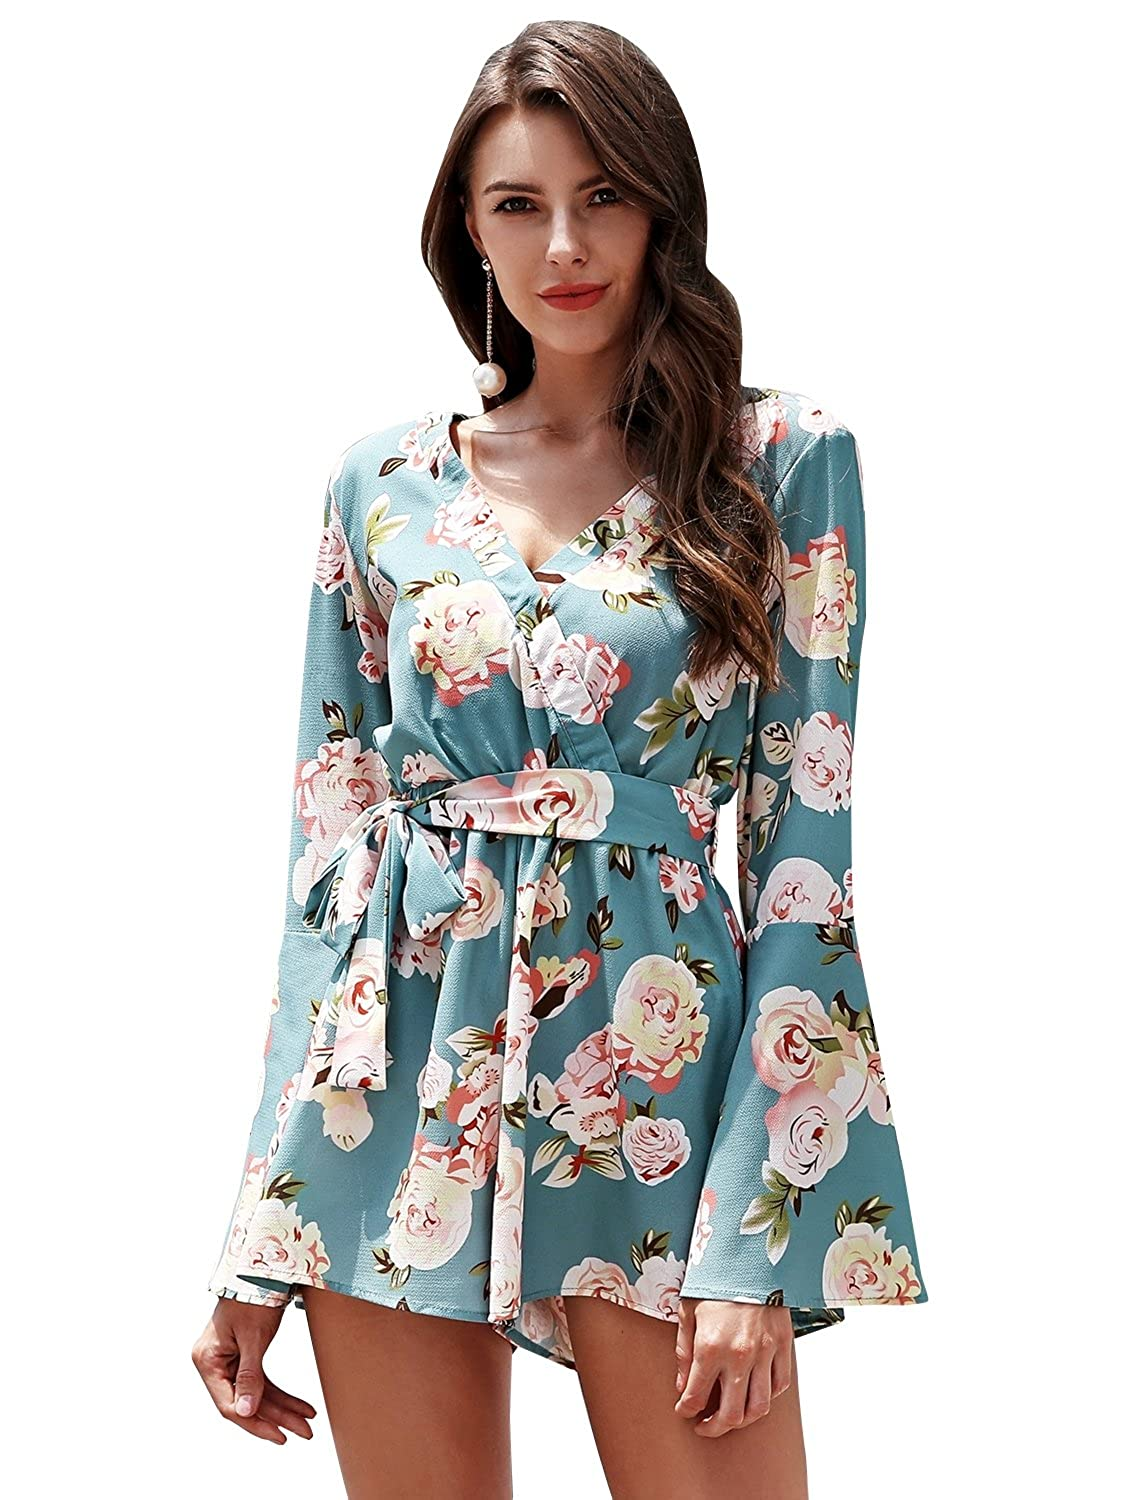 d0949a9de16 Amazon.com  Simplee Apparel Women s Sexy V Neck Chiffon Floral Print Long  Sleeve Jumpsuit Romper  Clothing